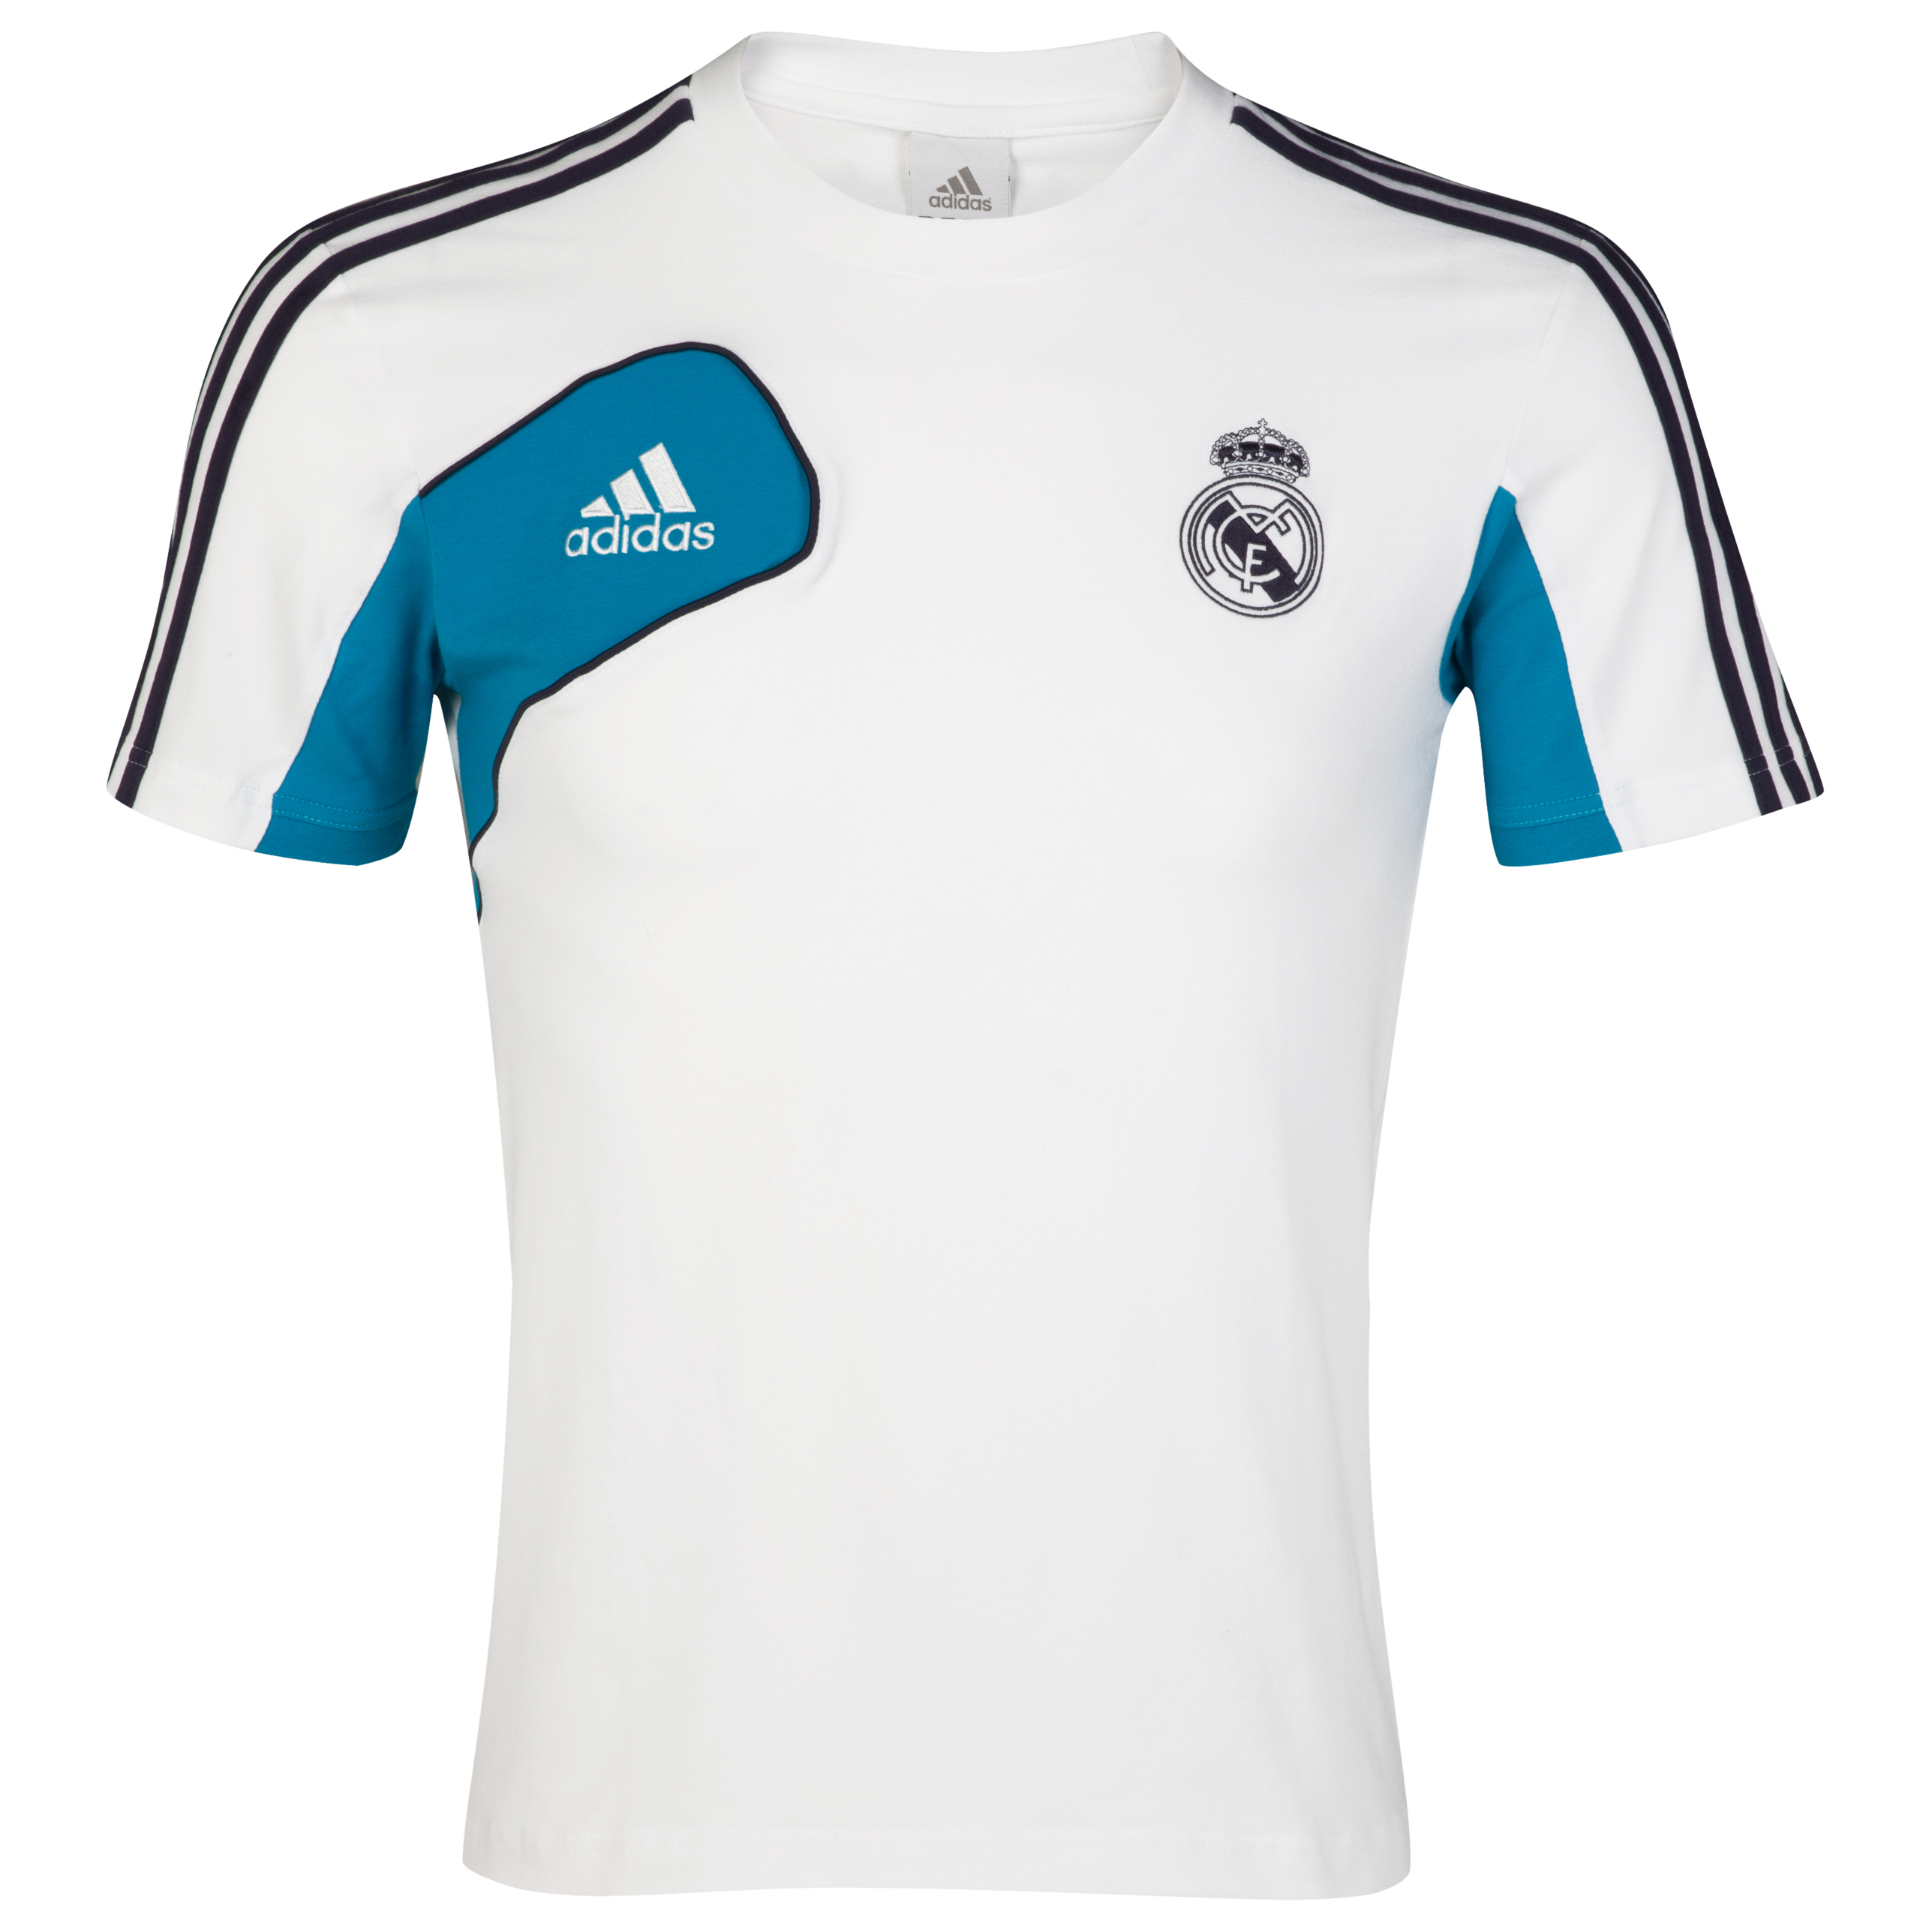 Camiseta entrenamiento Real Madrid - Blanco/negro - Nio